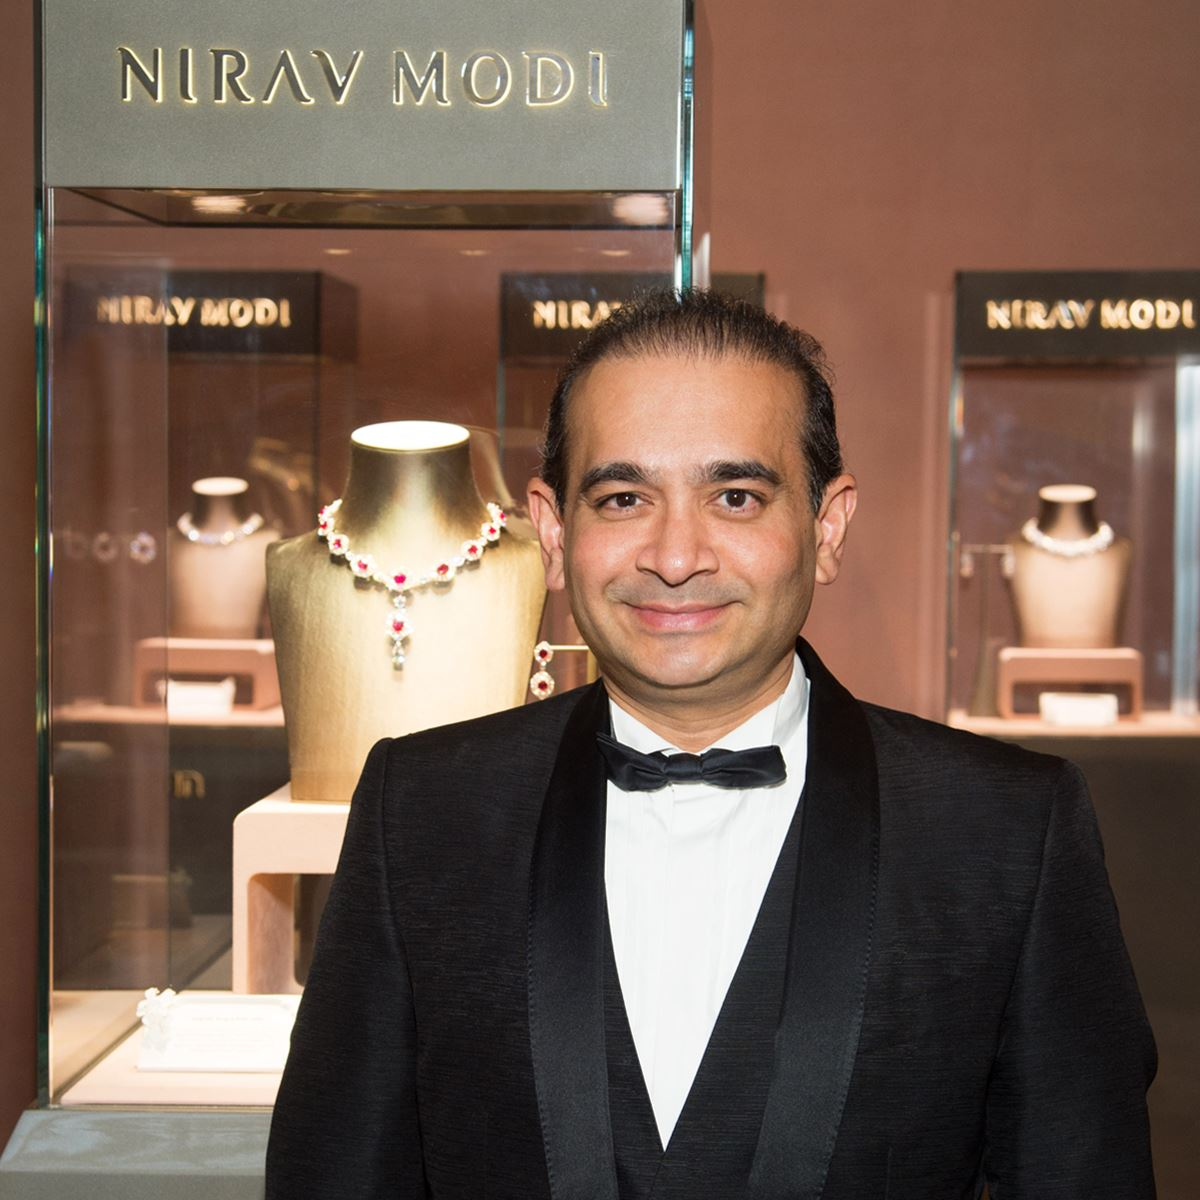 UK Confirms Nirav Modi in Its Territory, CBI Moves Extradition Request